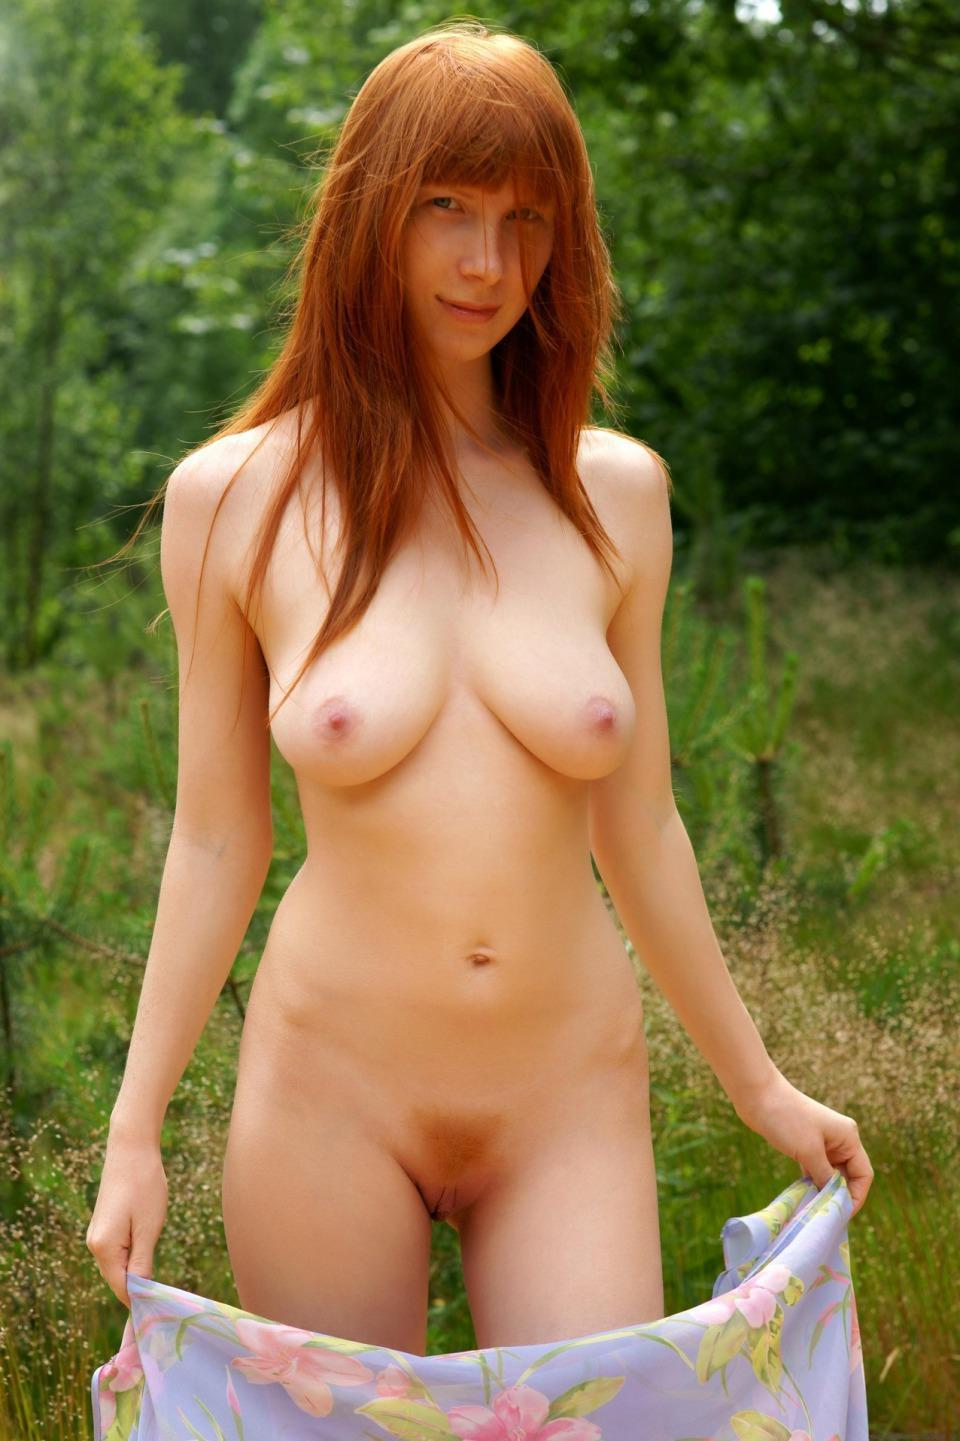 red hair woman looking for sex